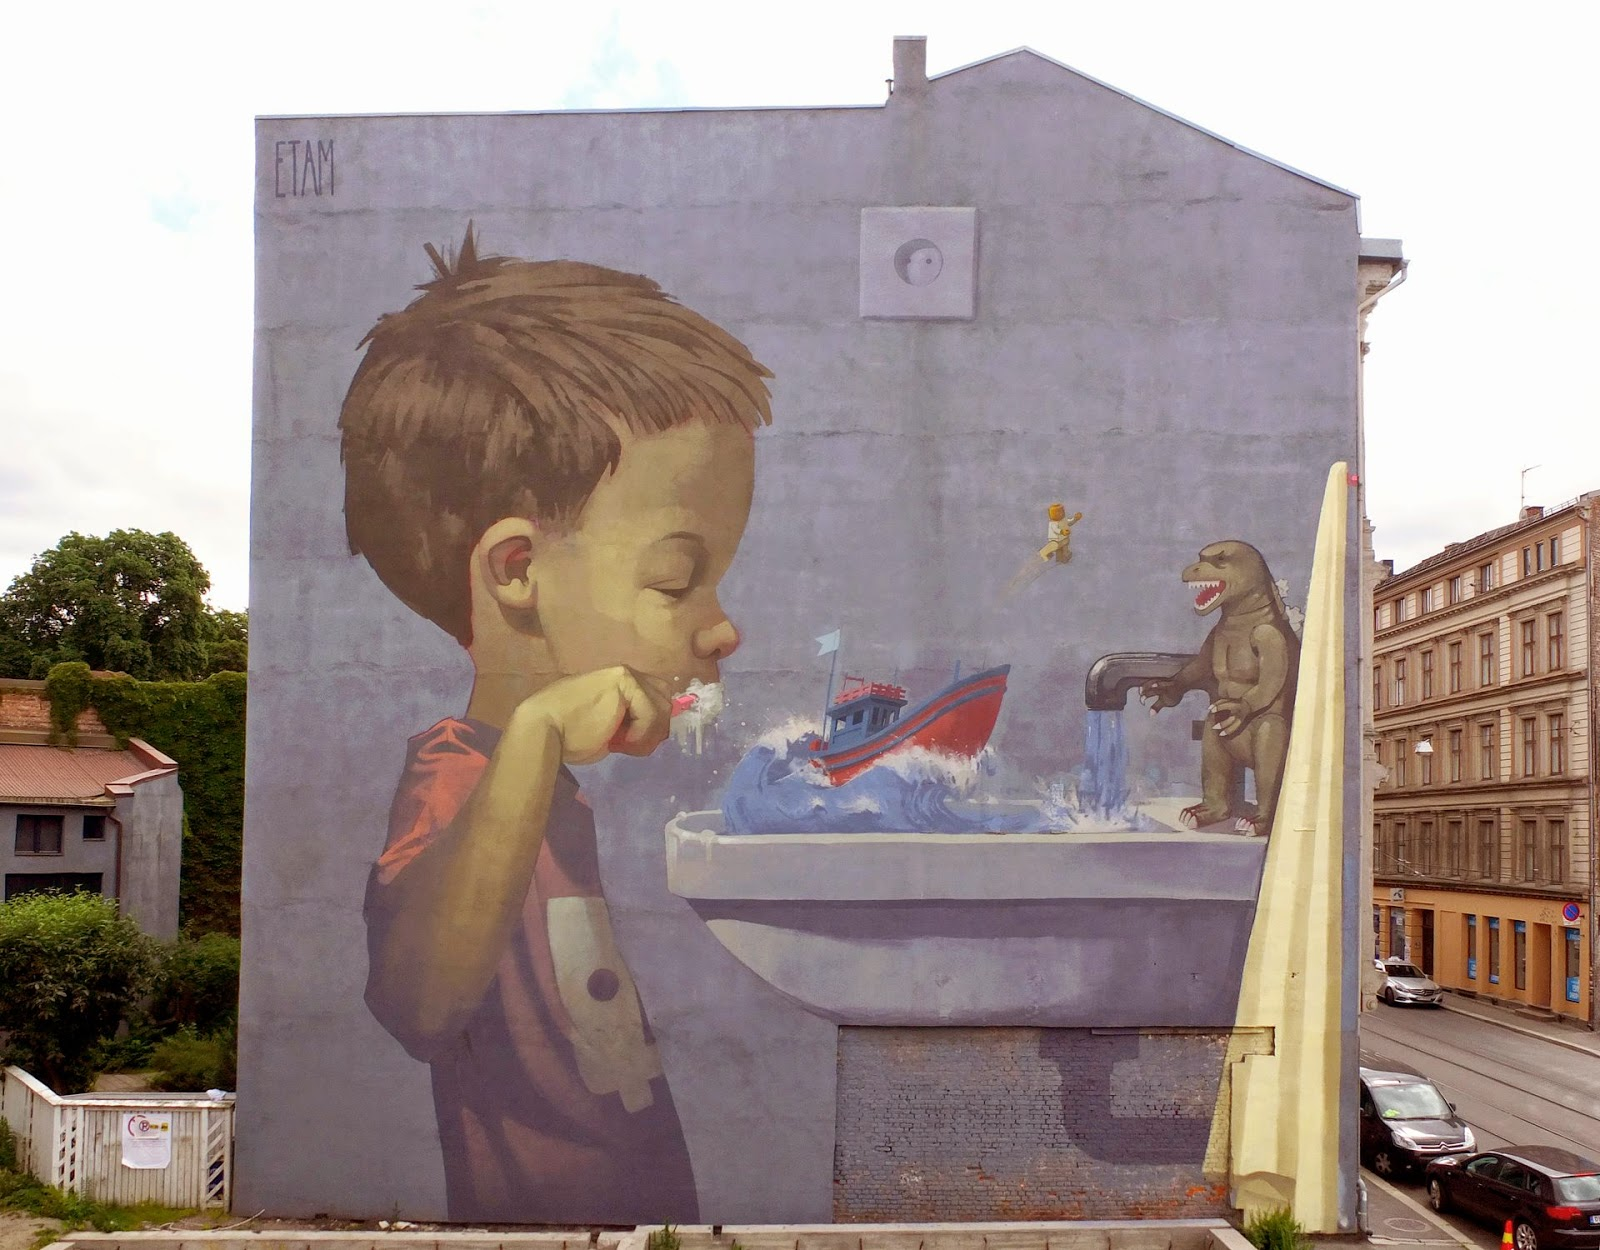 Etam cru new mural oslo norway streetartnews for Fresque murale definition